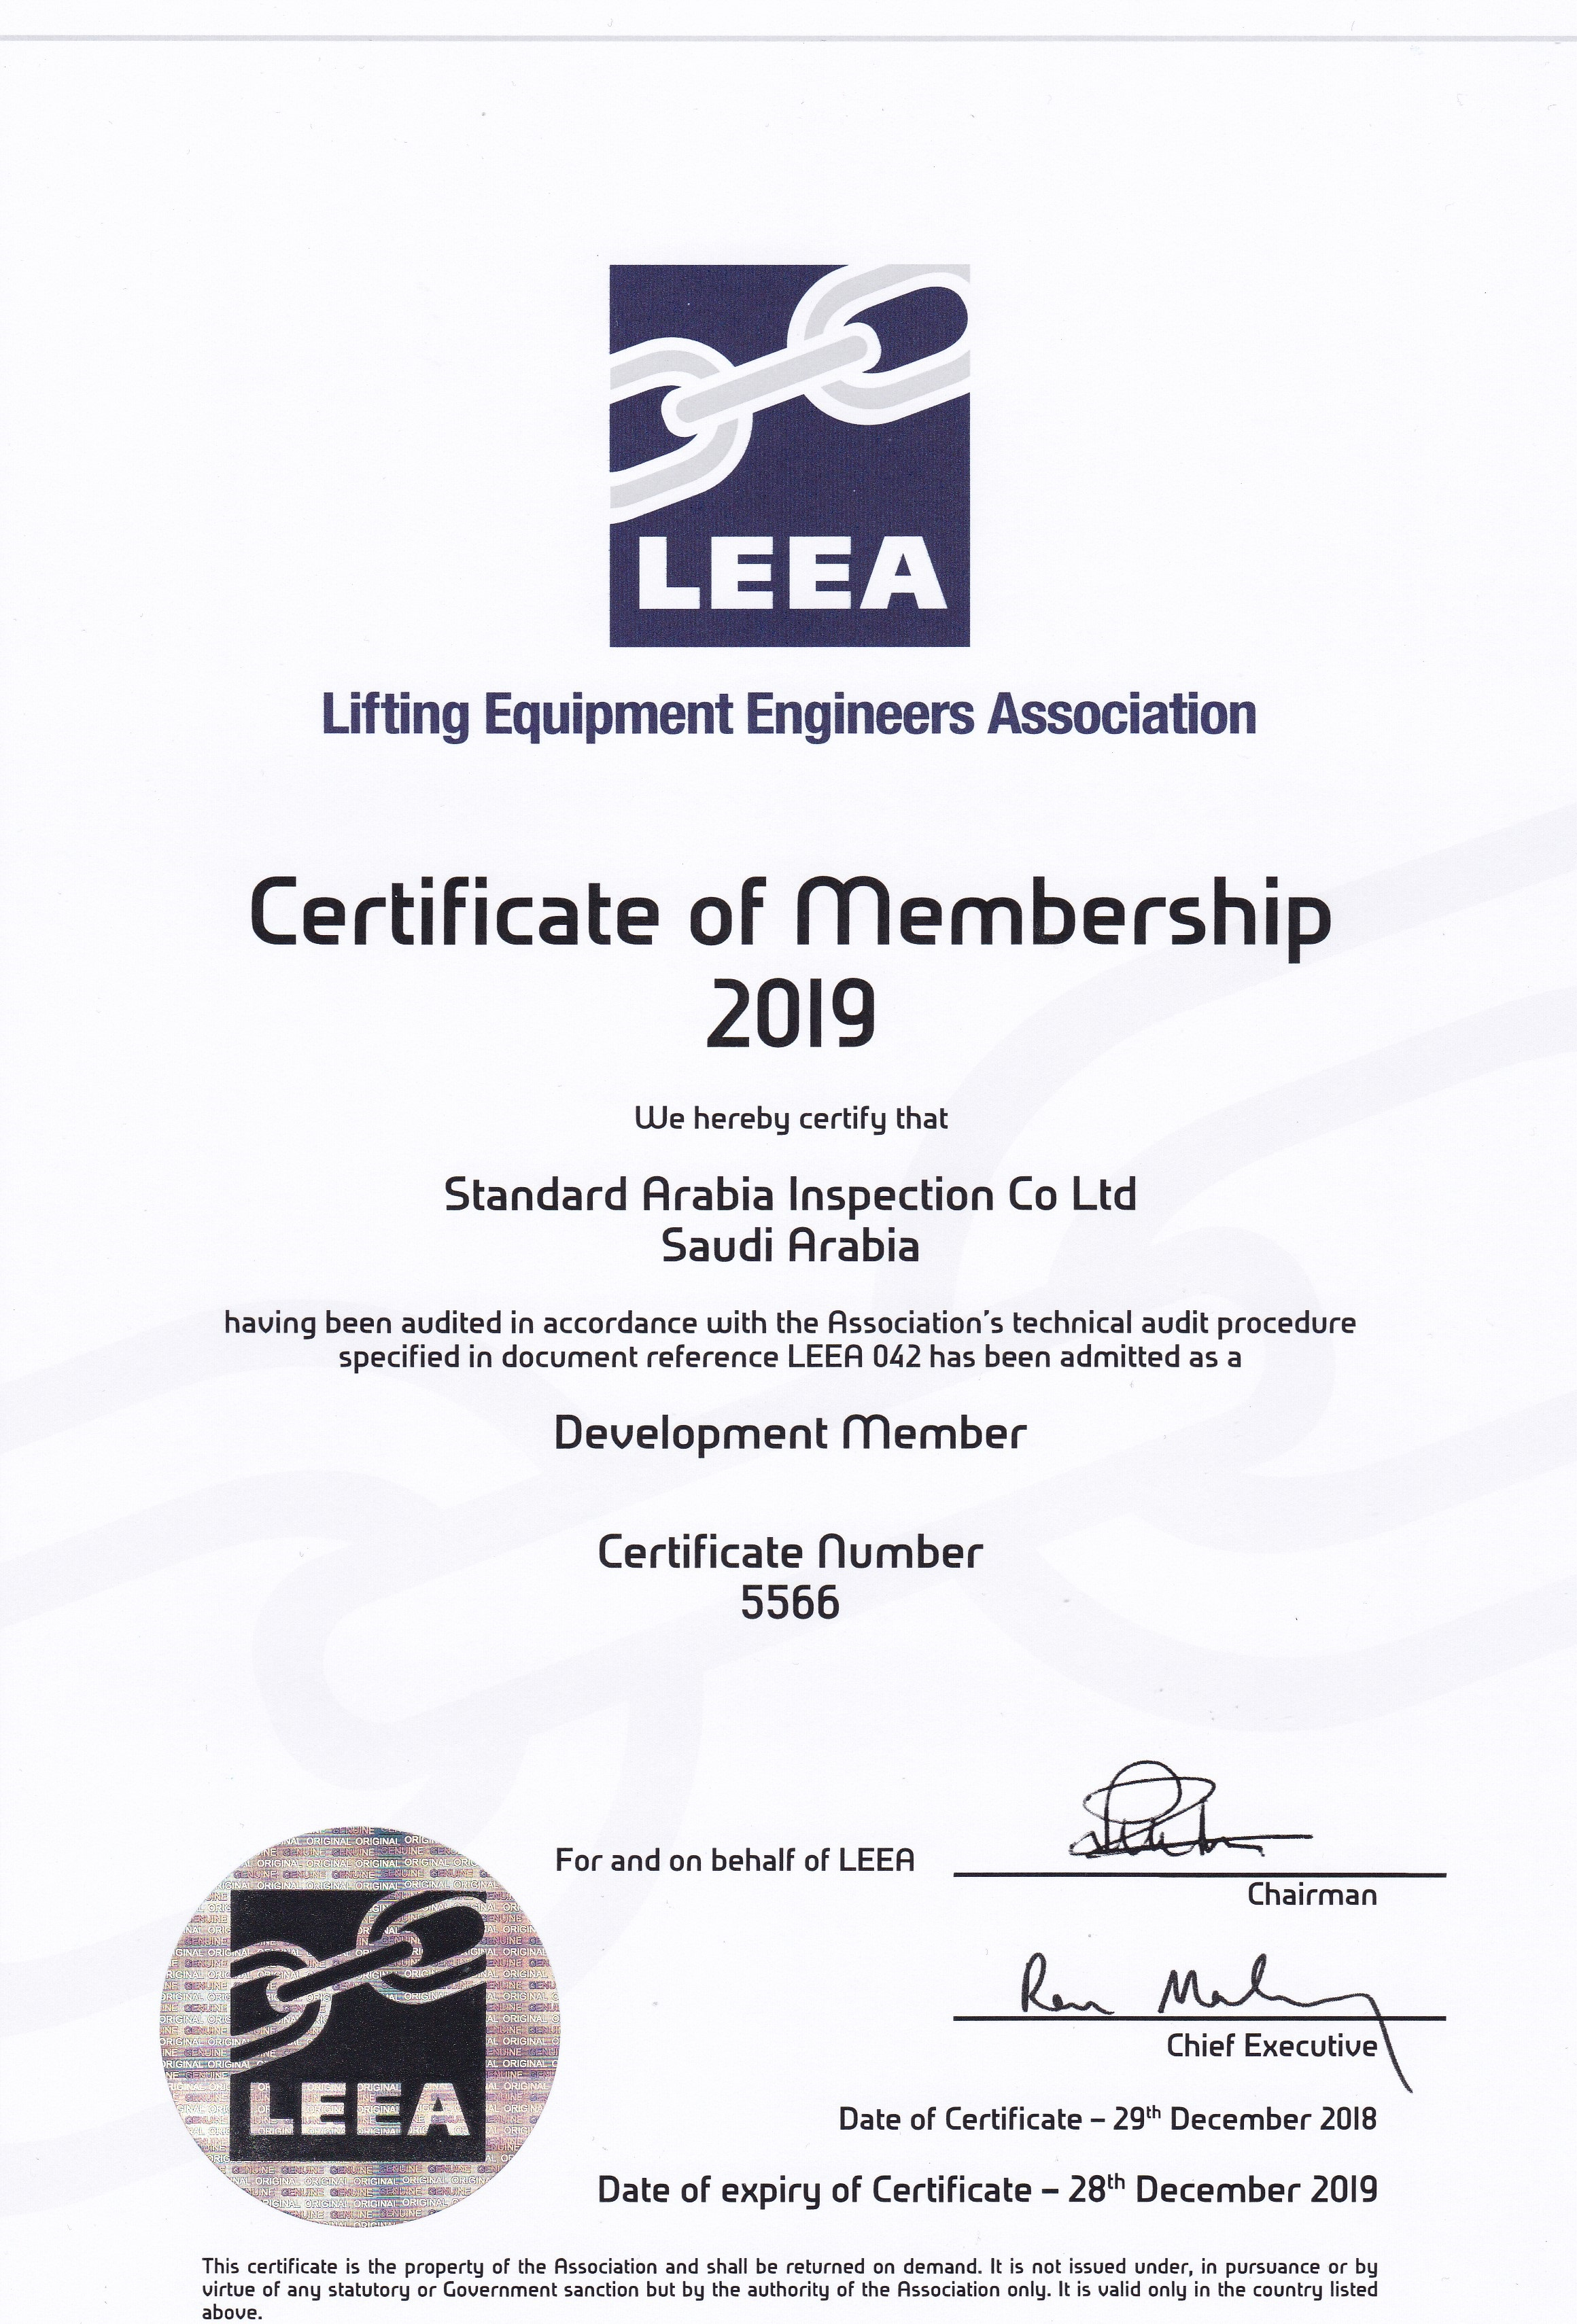 Certified as a member of the LEEA